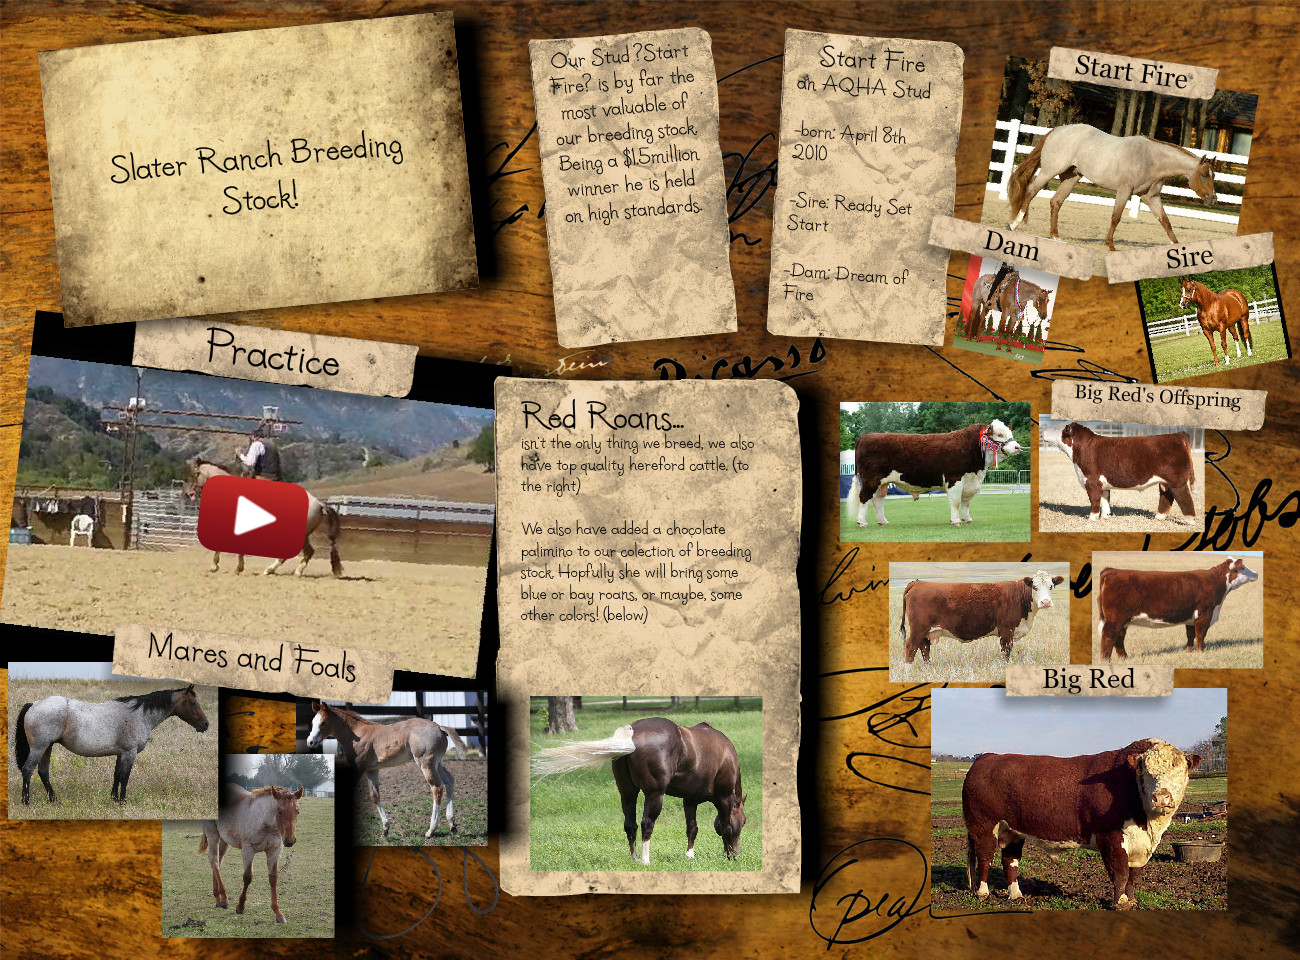 Slater ranch breeding stock